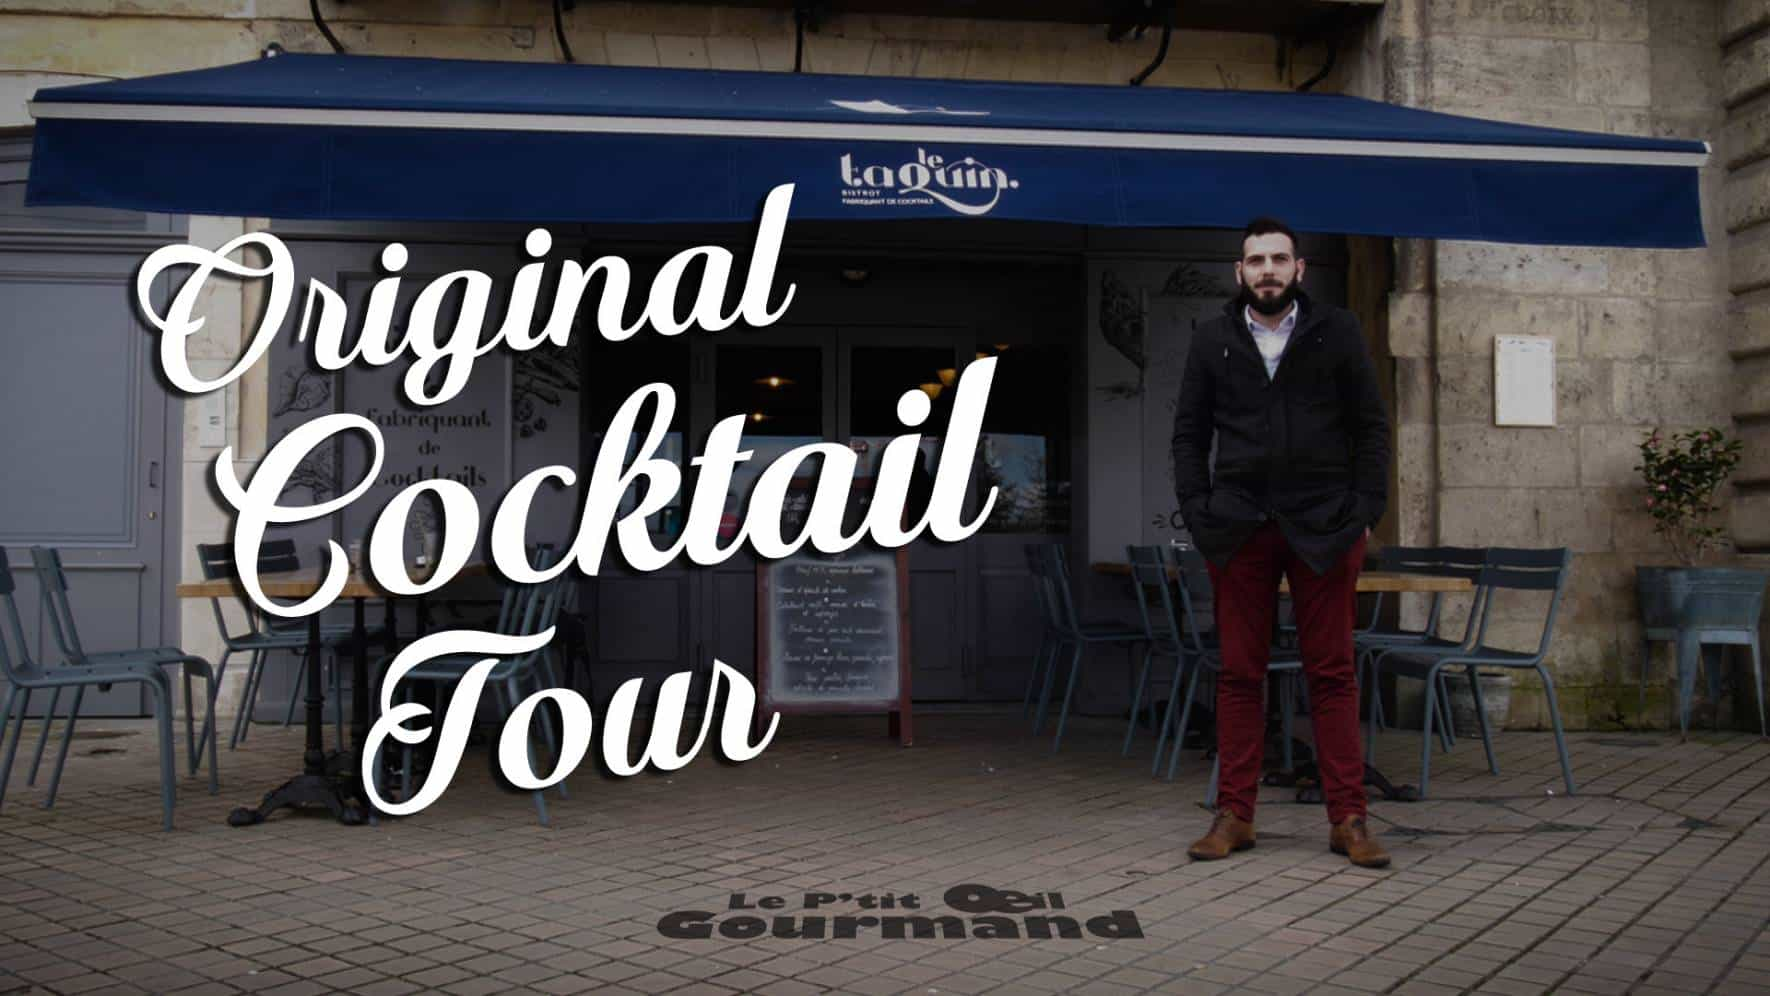 Original Cocktail Tour – Le P'tit Oeil Gourmand